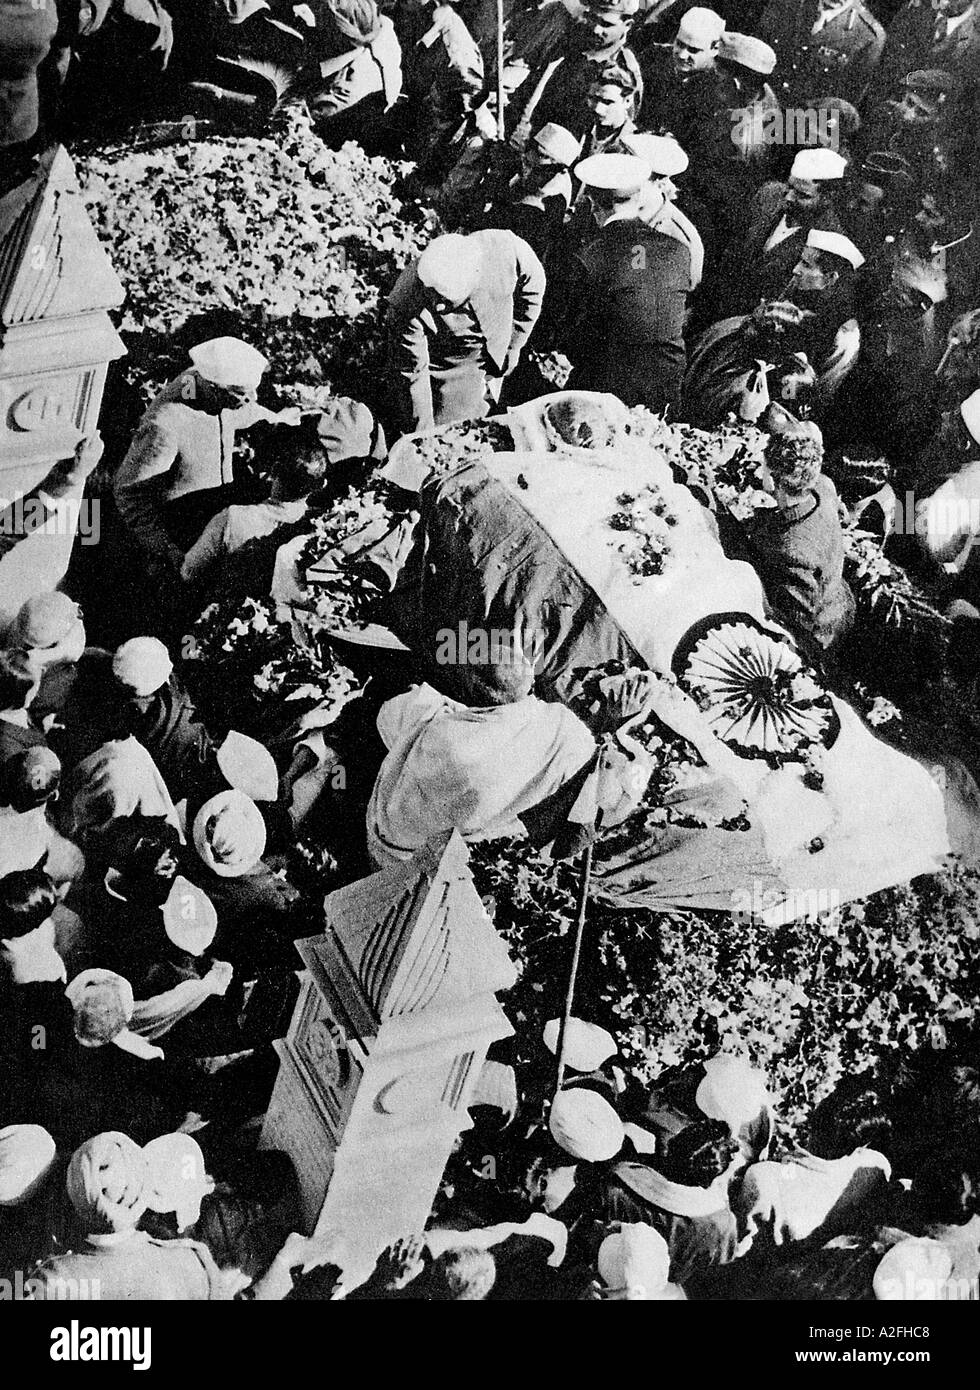 MKG33606 Jawaharlal Nehru next to Gandhis dead body wrapped in Indian Flag 1948 - Stock Image